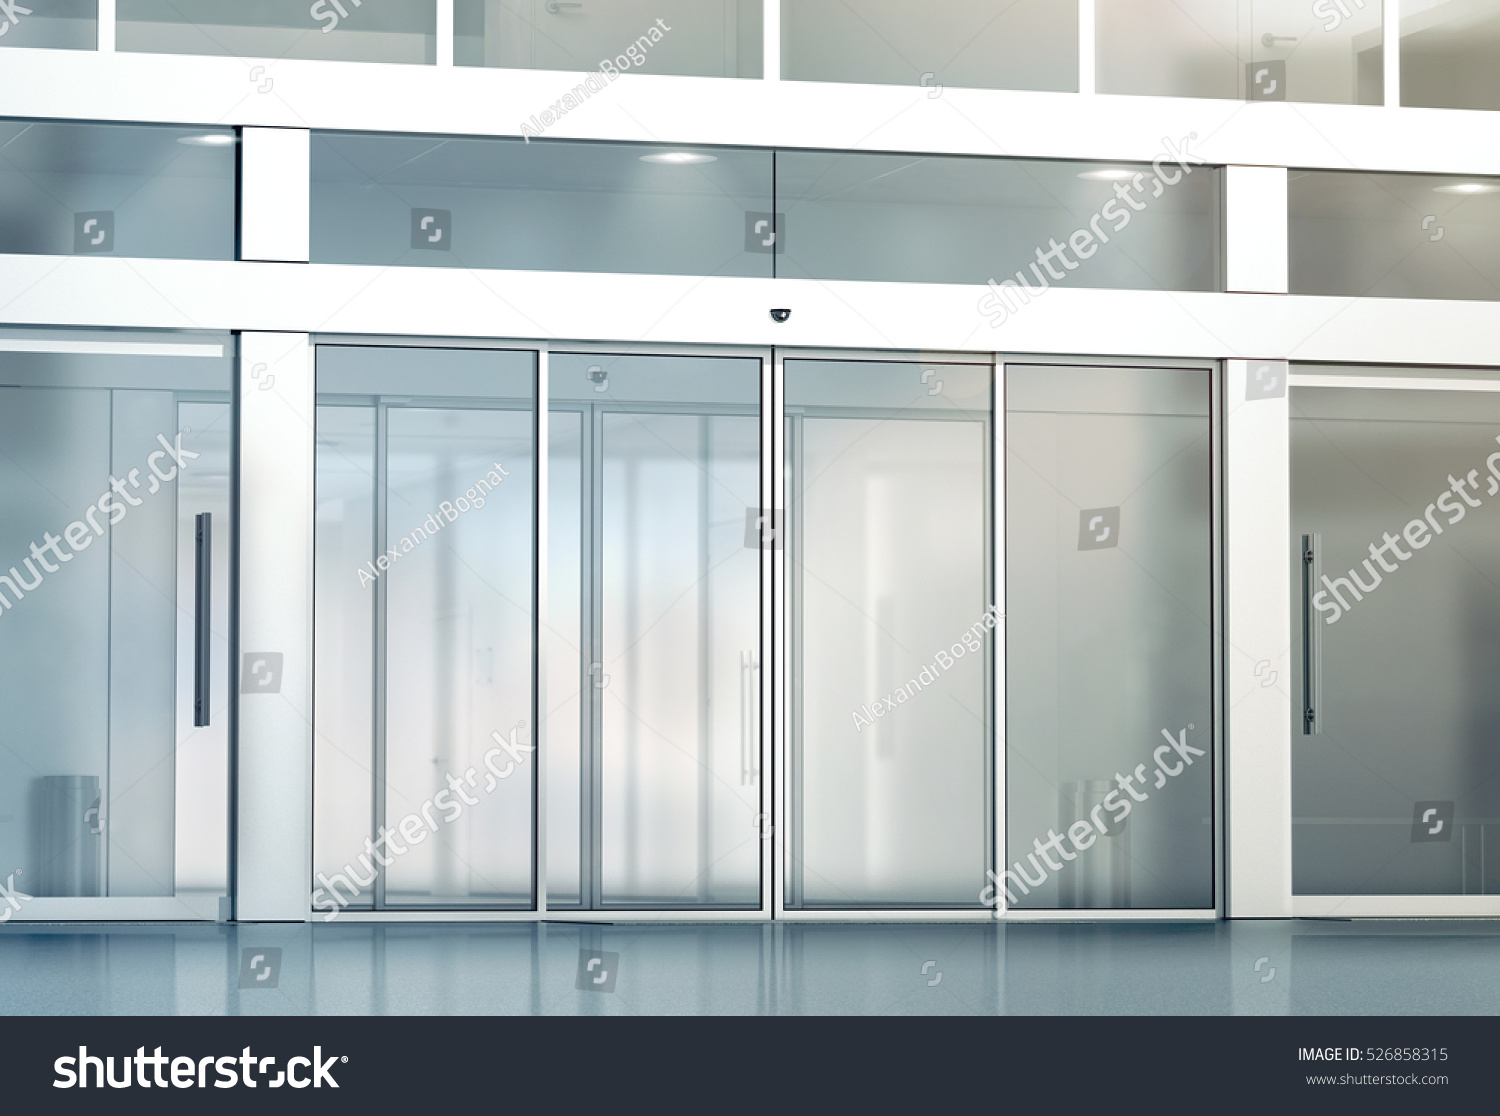 Exterior glass doors business - Blank Sliding Glass Doors Entrance Mockup 3d Rendering Commercial Automatic Entry Mock Up